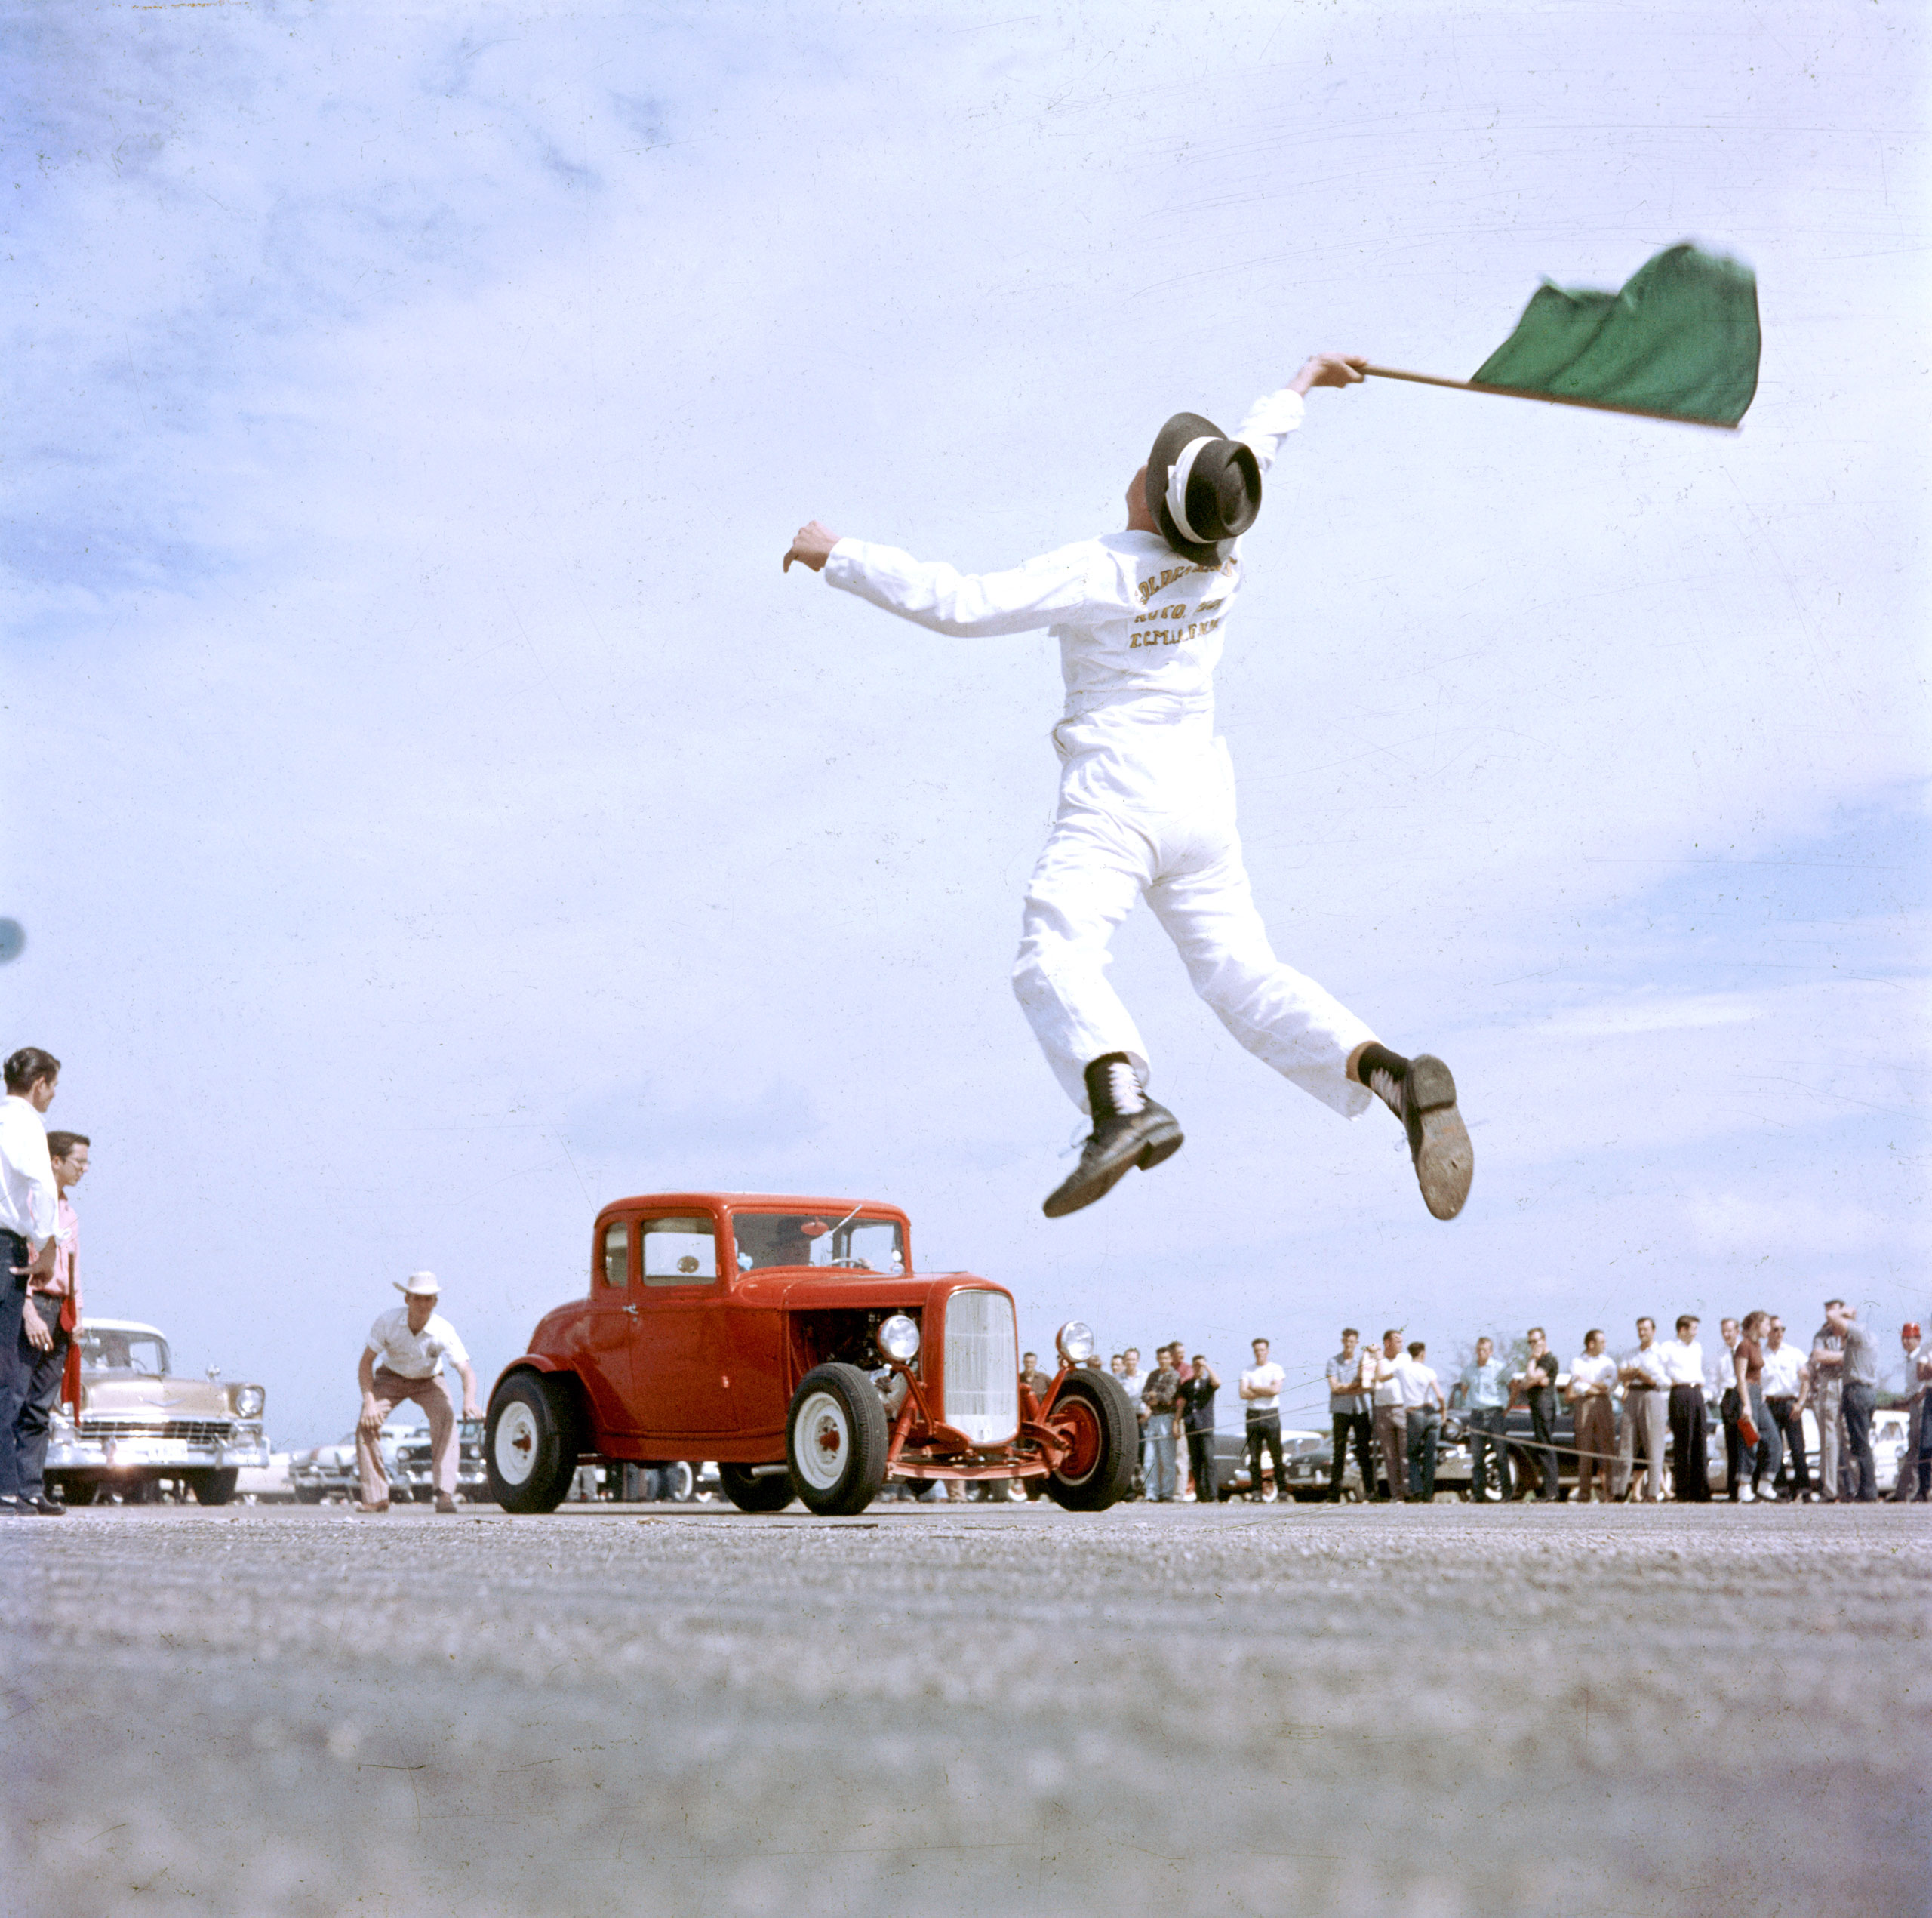 Starter flagging dragsters to start at Eagle Mt. Fort Worth, Texas 1957.